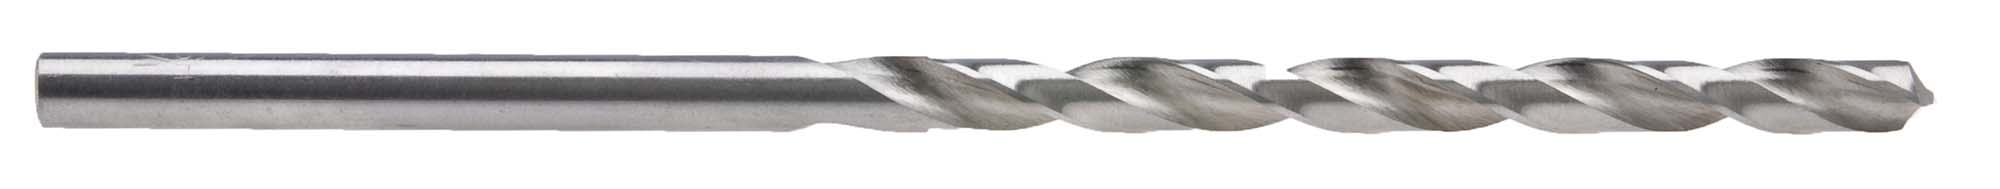 "I (.272"") ""Taper Length"" Long Straight Shank Drill Bit, High Speed Steel"